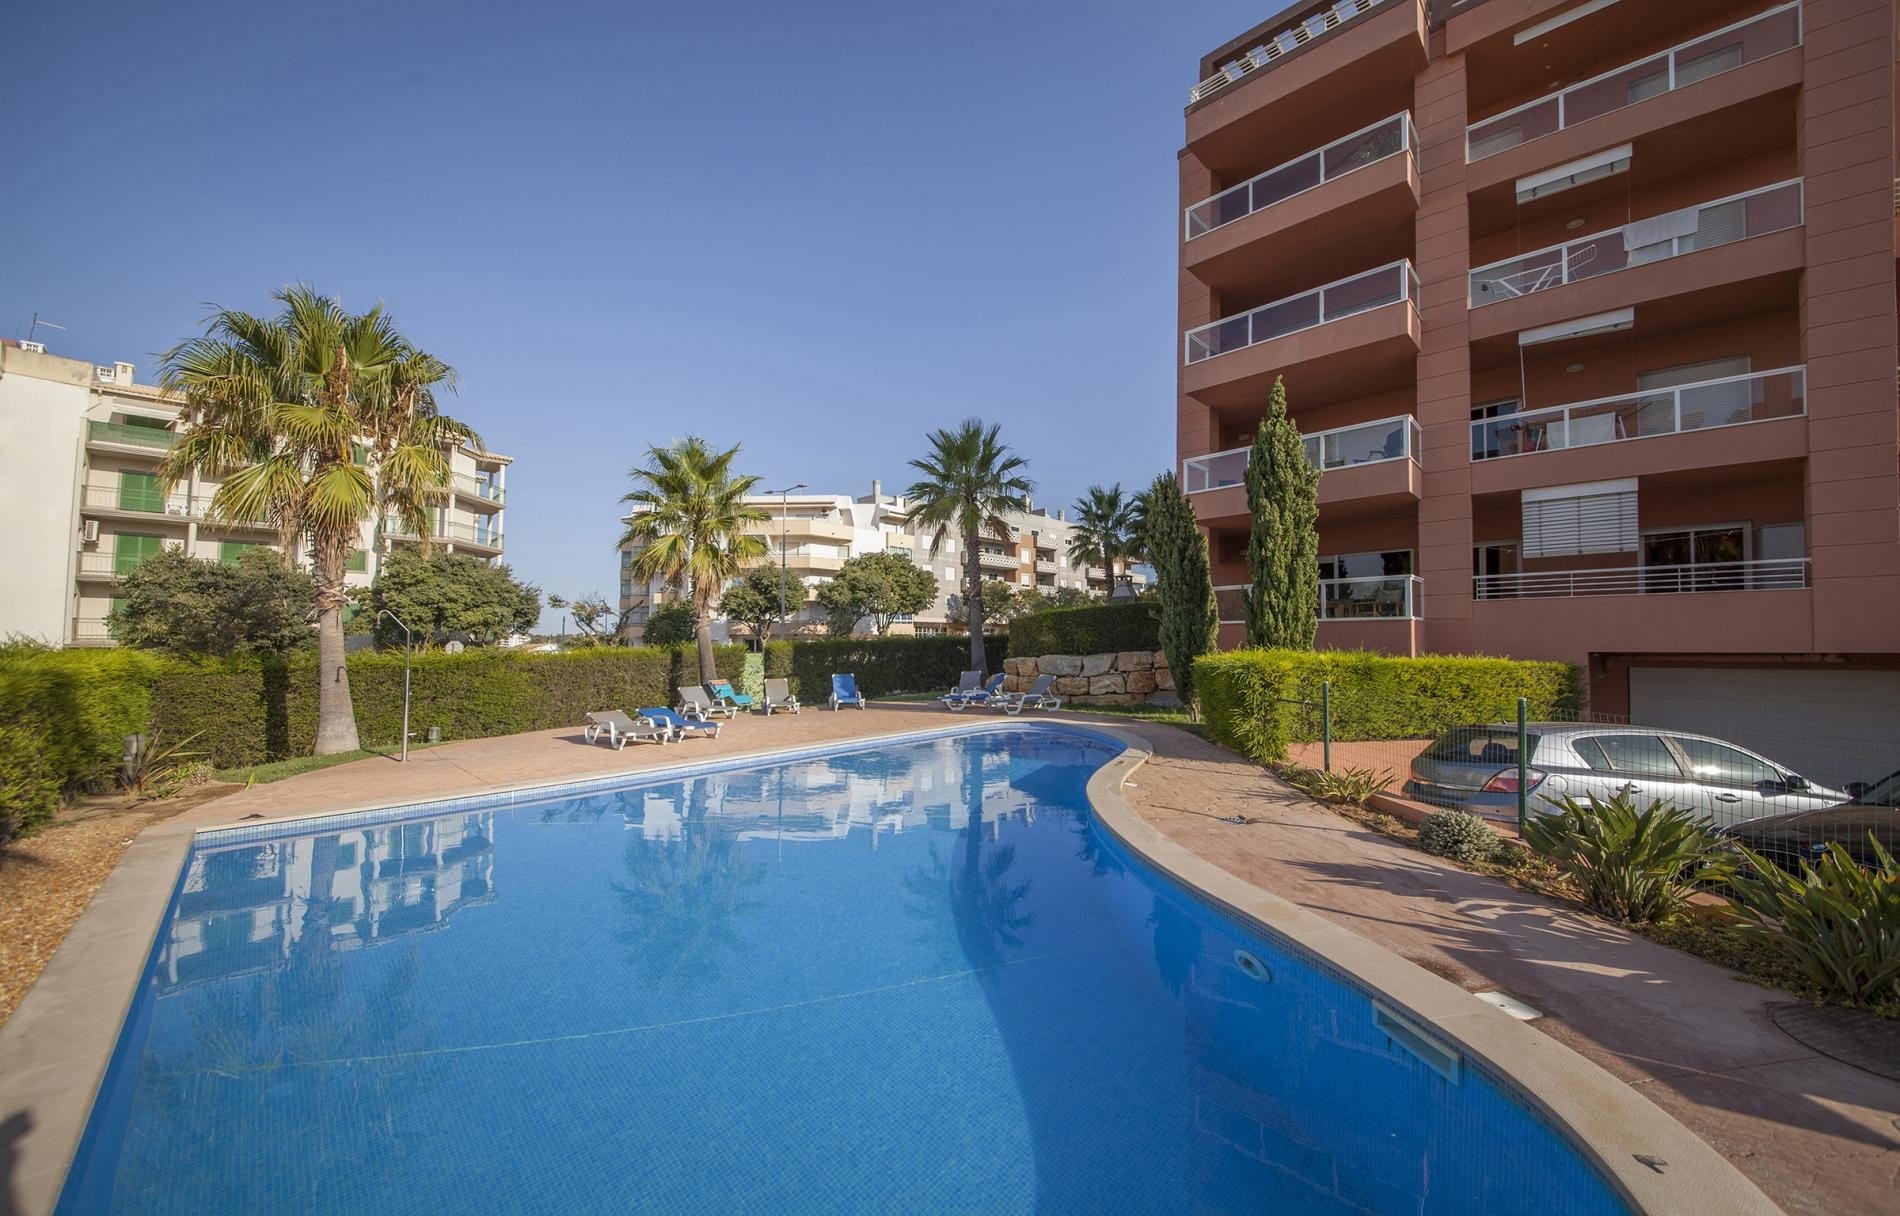 Apartment B02 - Fantastic Apartment with Pool Almost on the Sandy Beach  photo 20866925